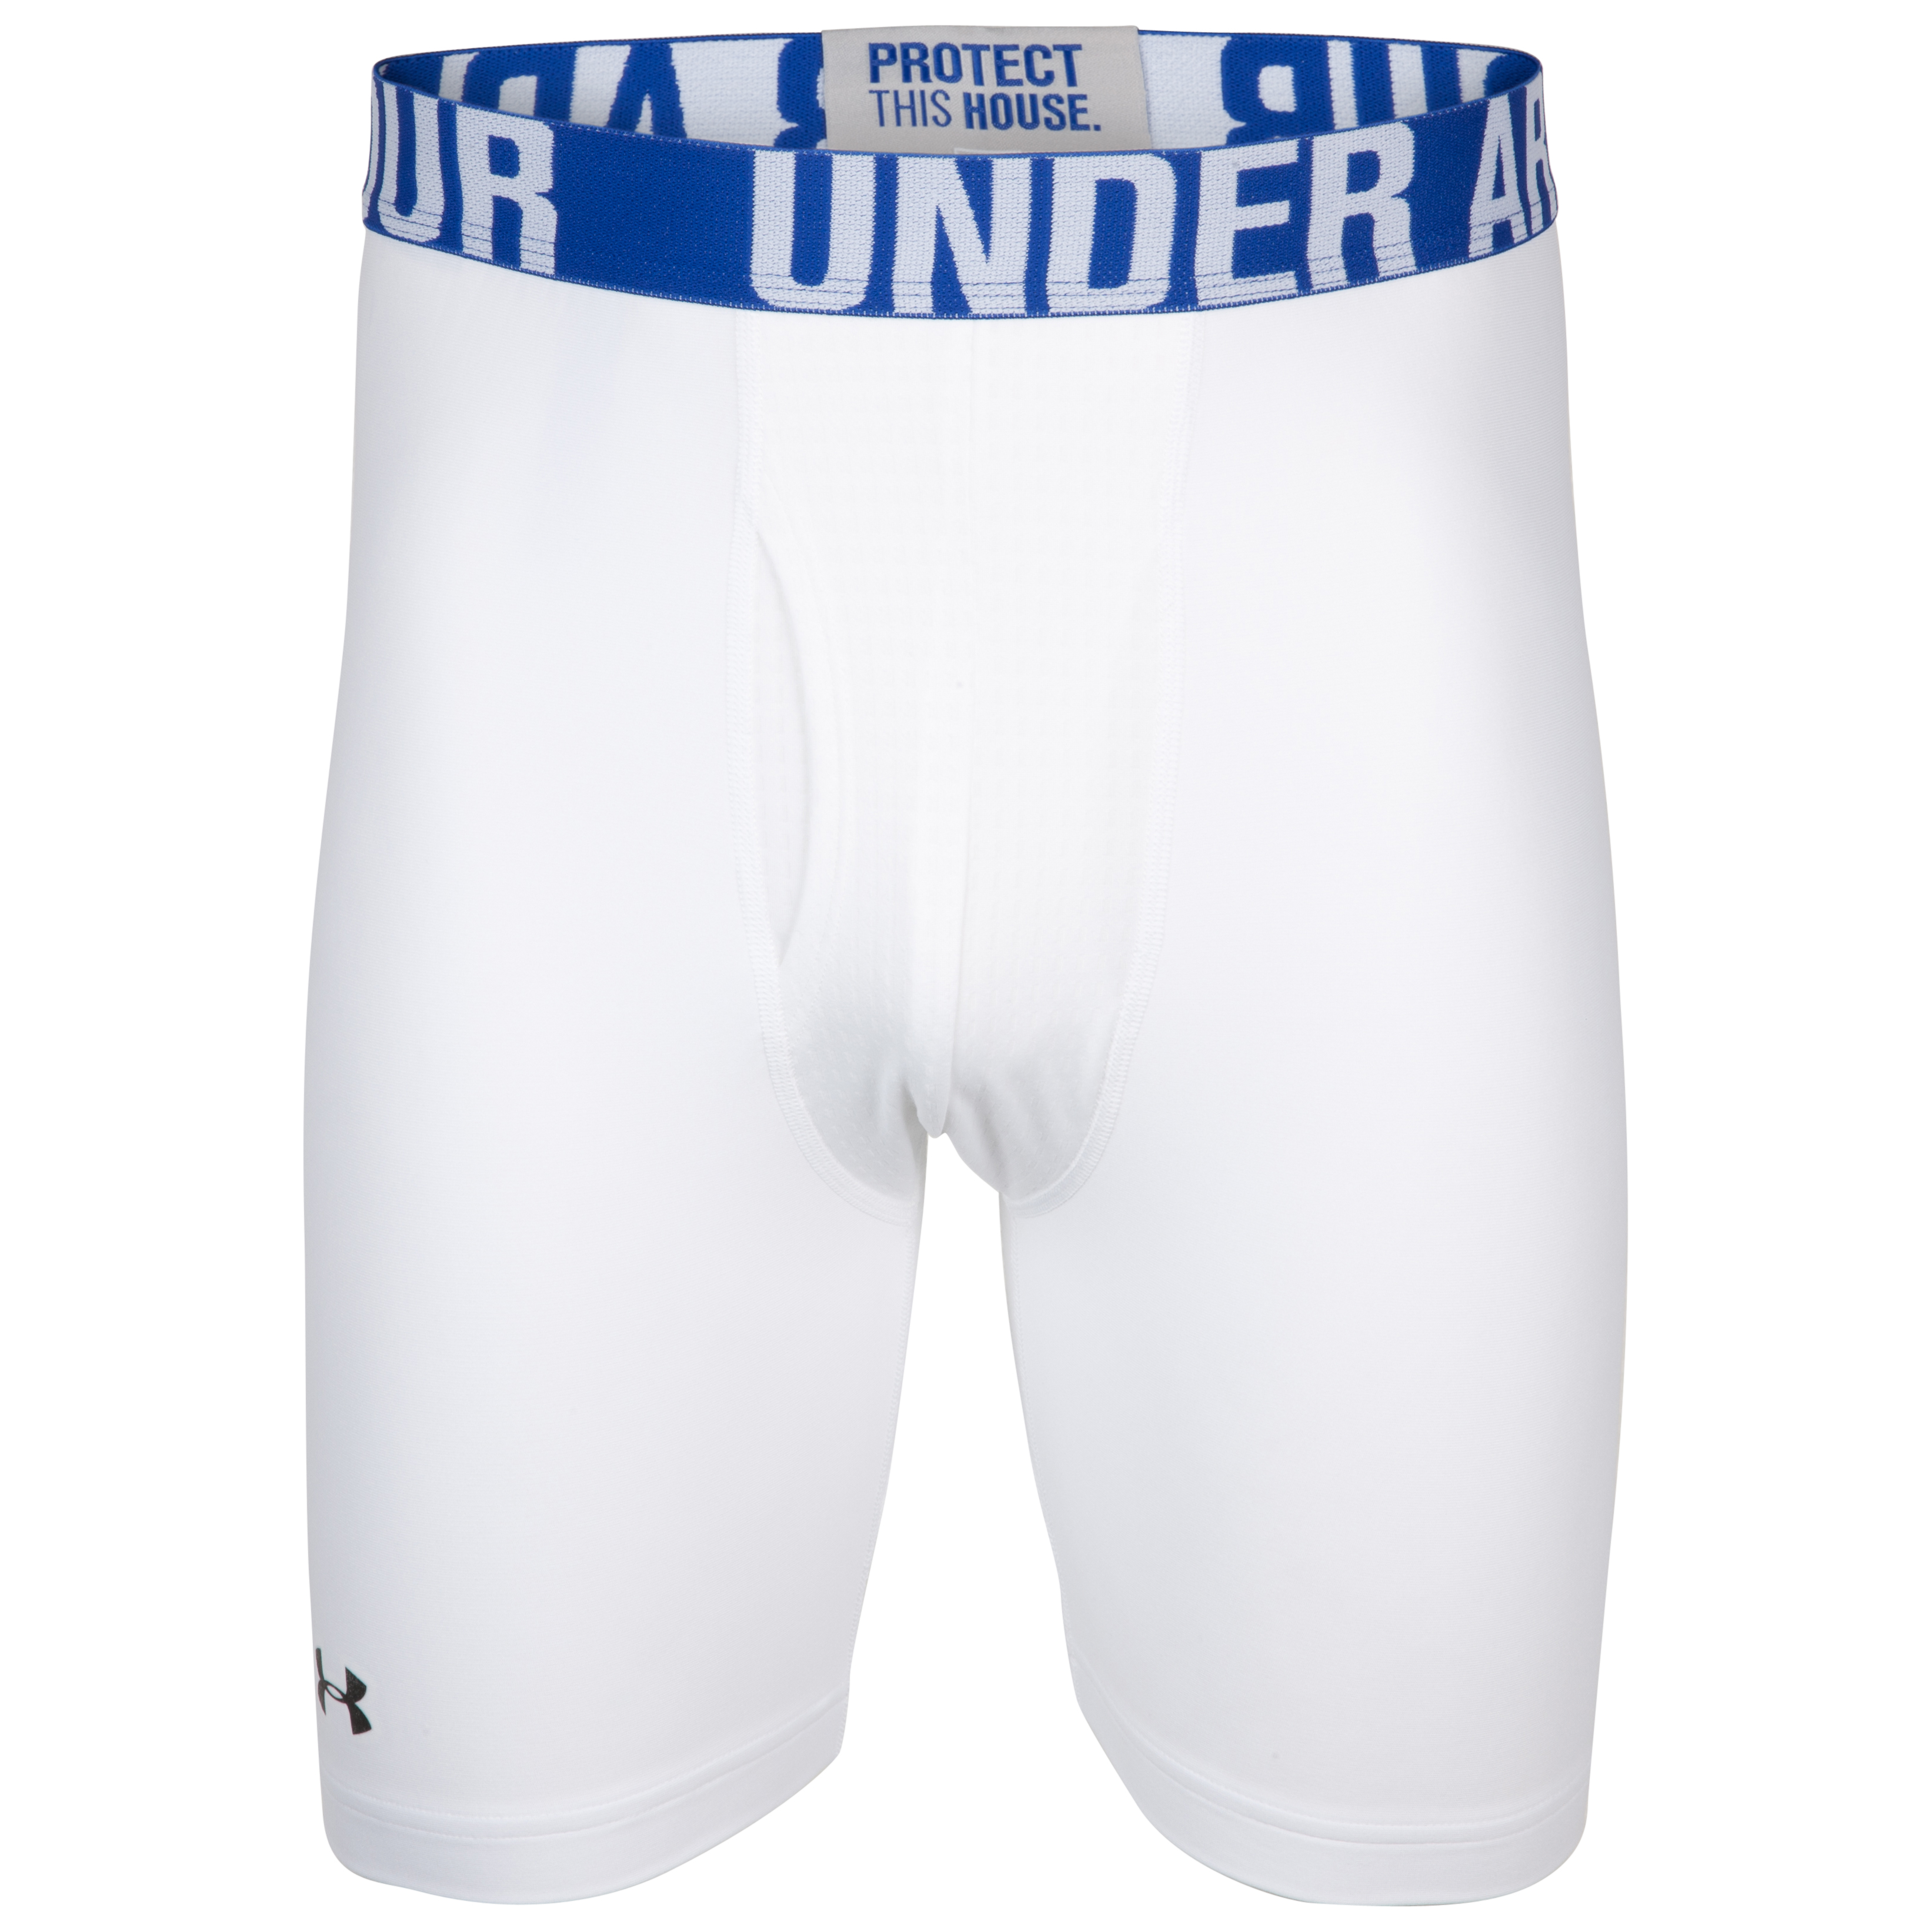 Under Armour Coldgear Compression Evo Shorts - White